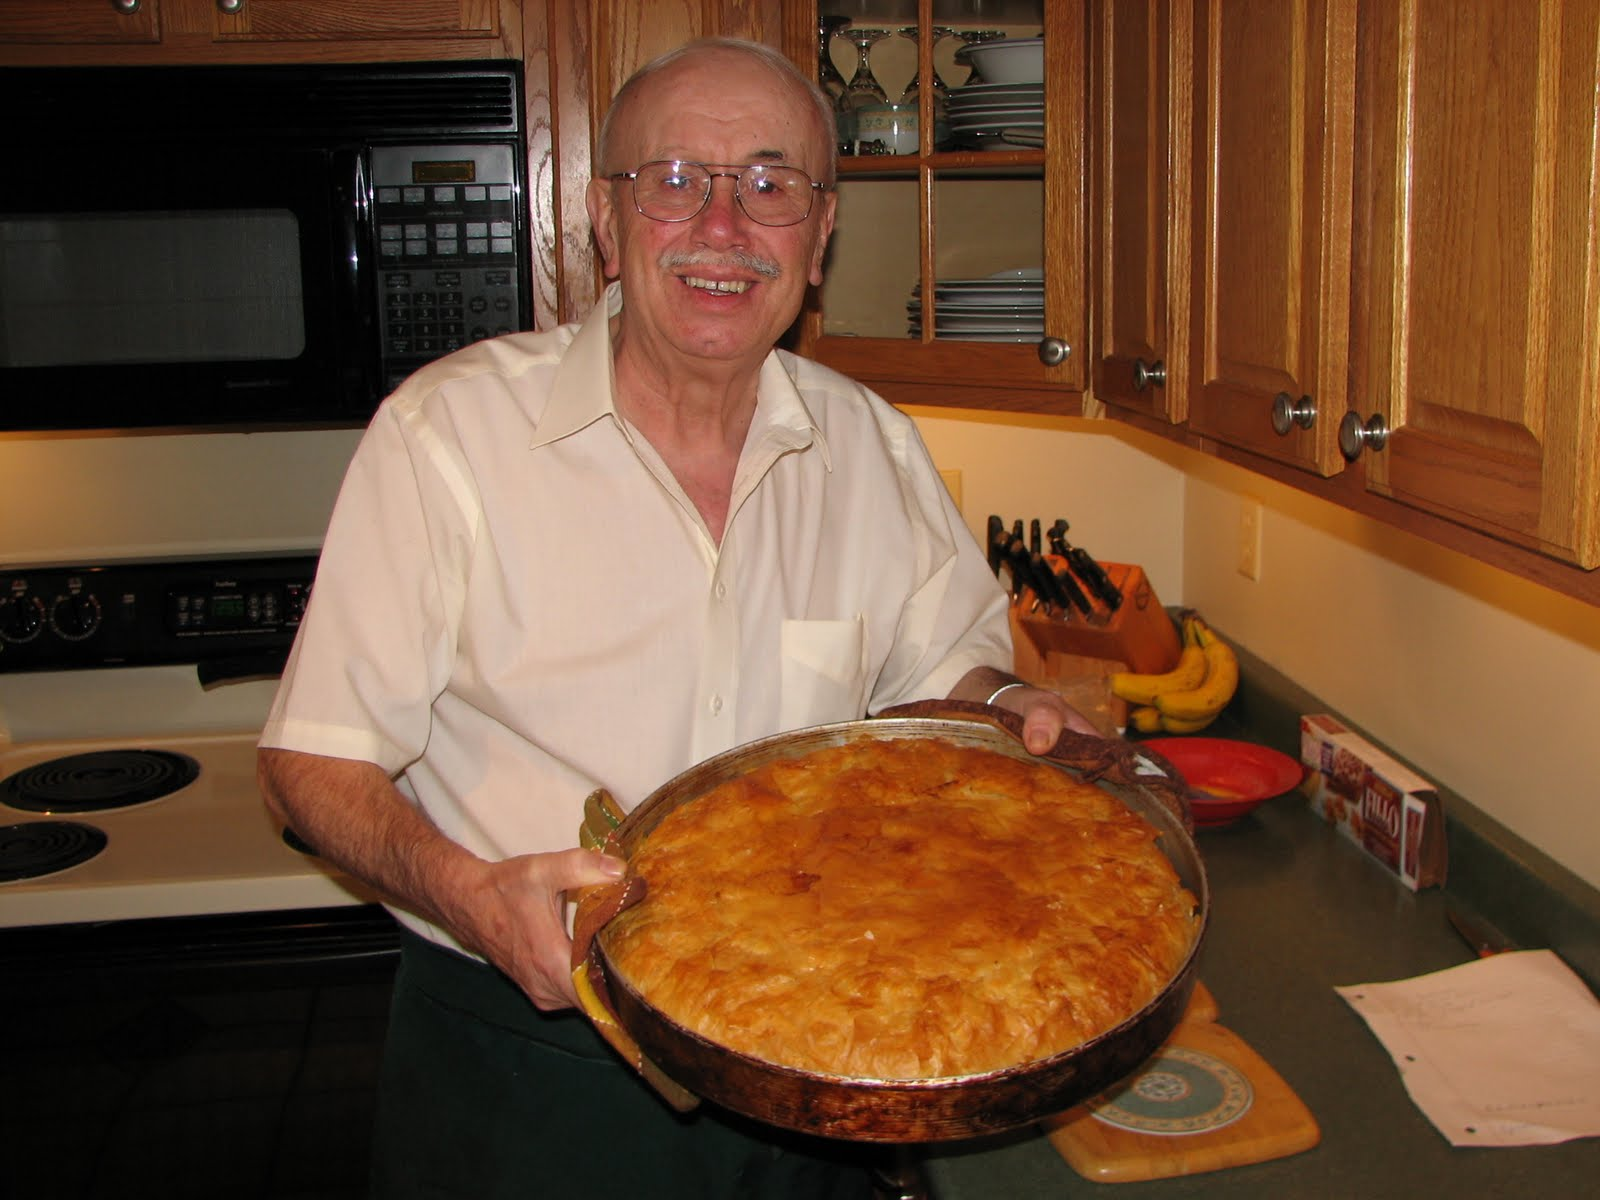 Bill Dilios, of Politsani, Albania, (formerly part of Greece) with his favorite food, a chicken and rice pie in phyllo dough.